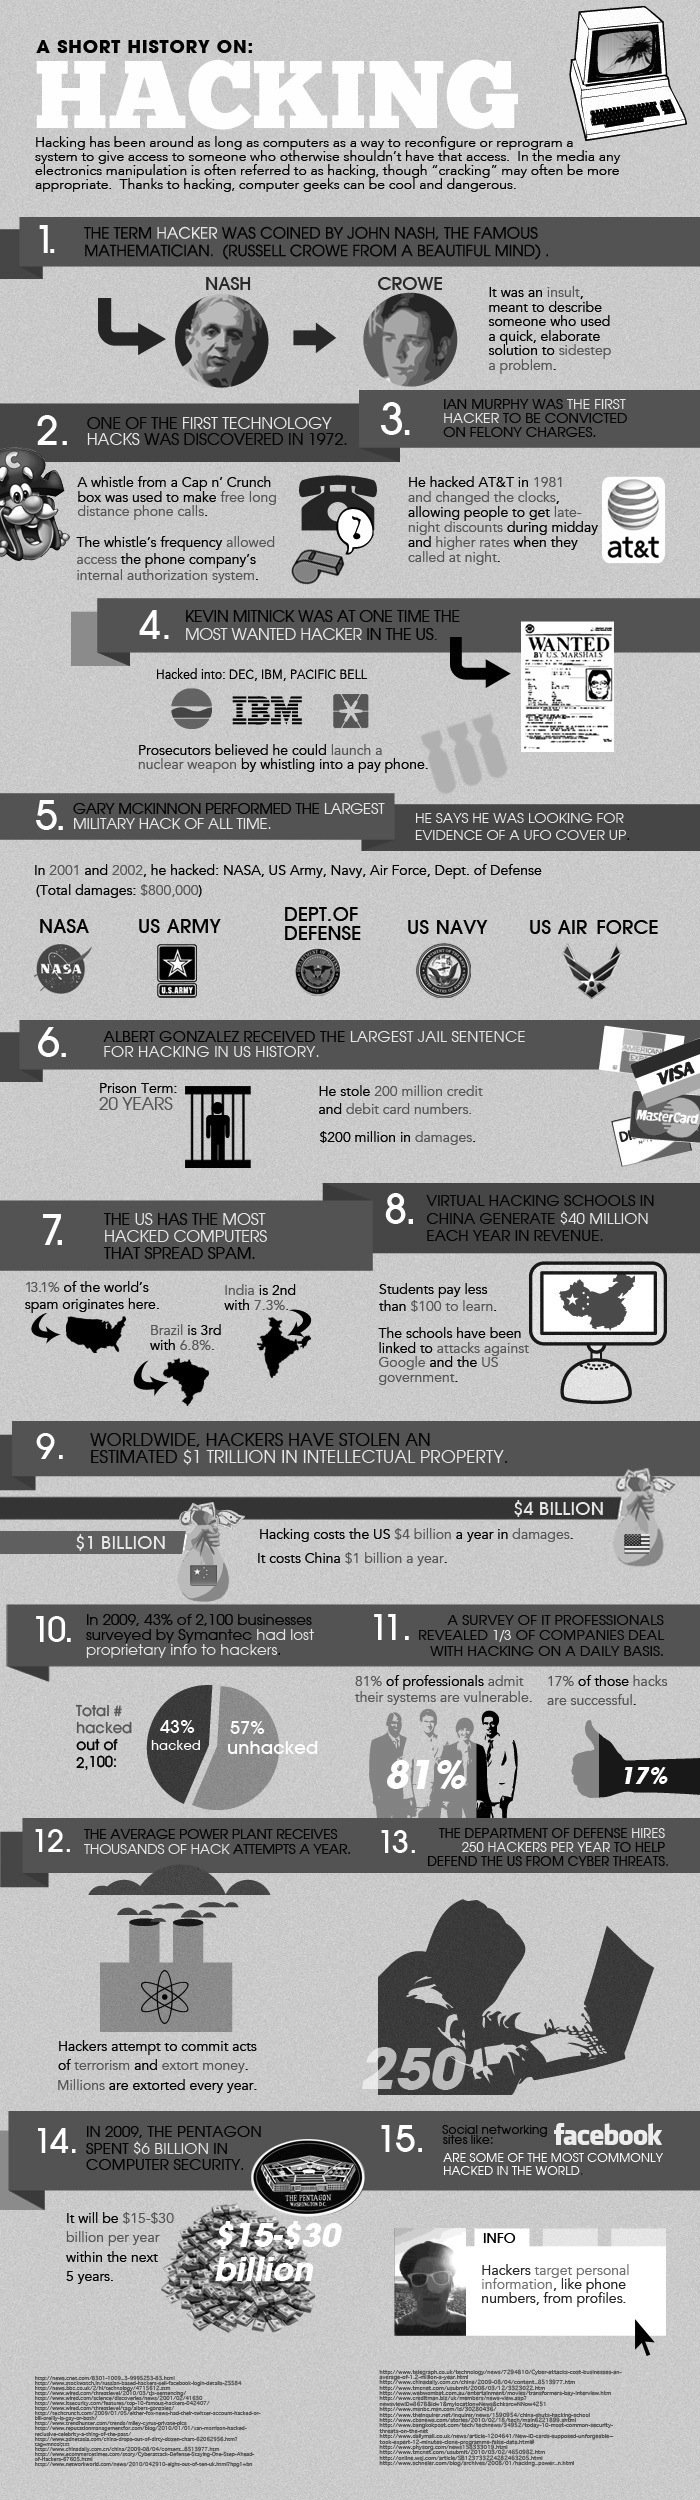 A short history on hacking #infographic